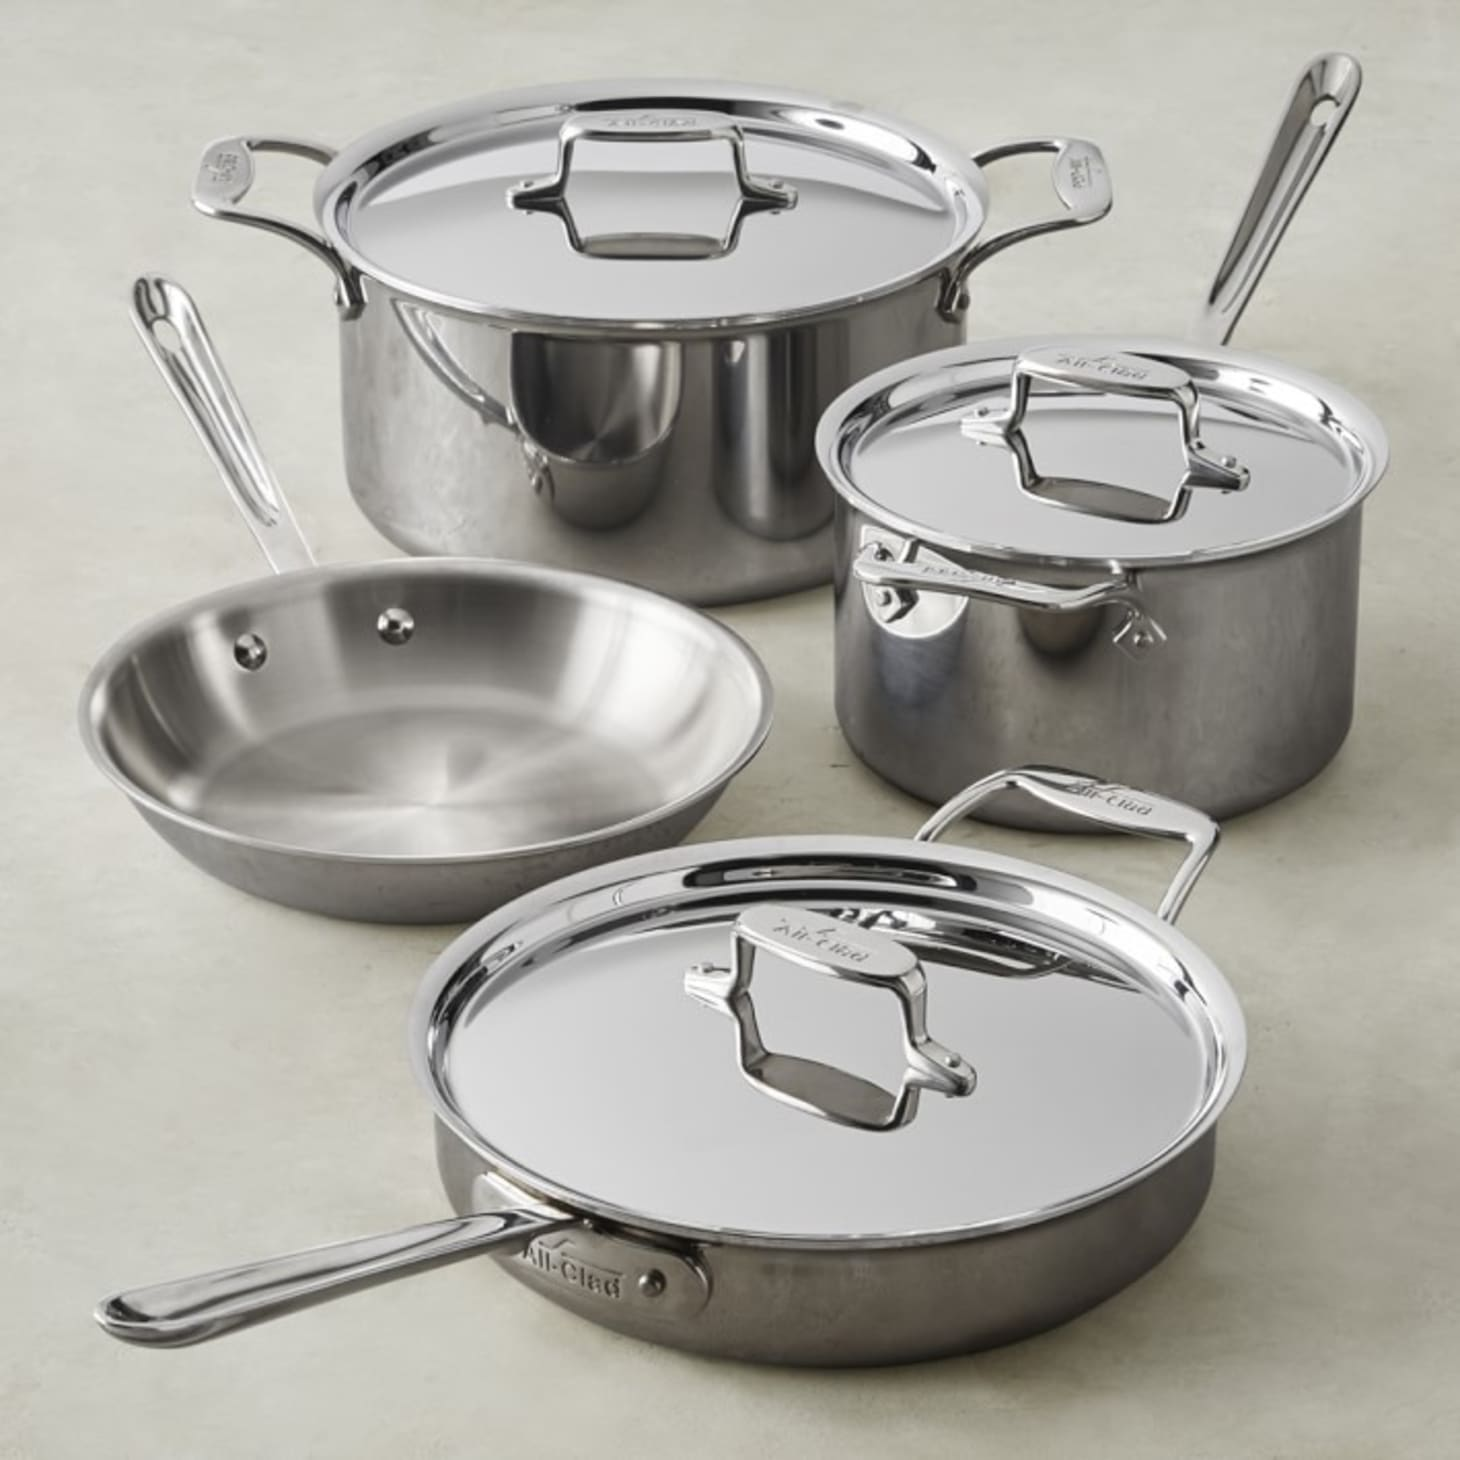 The Best All Clad Cheap Black Friday Cookware Deals Kitchn